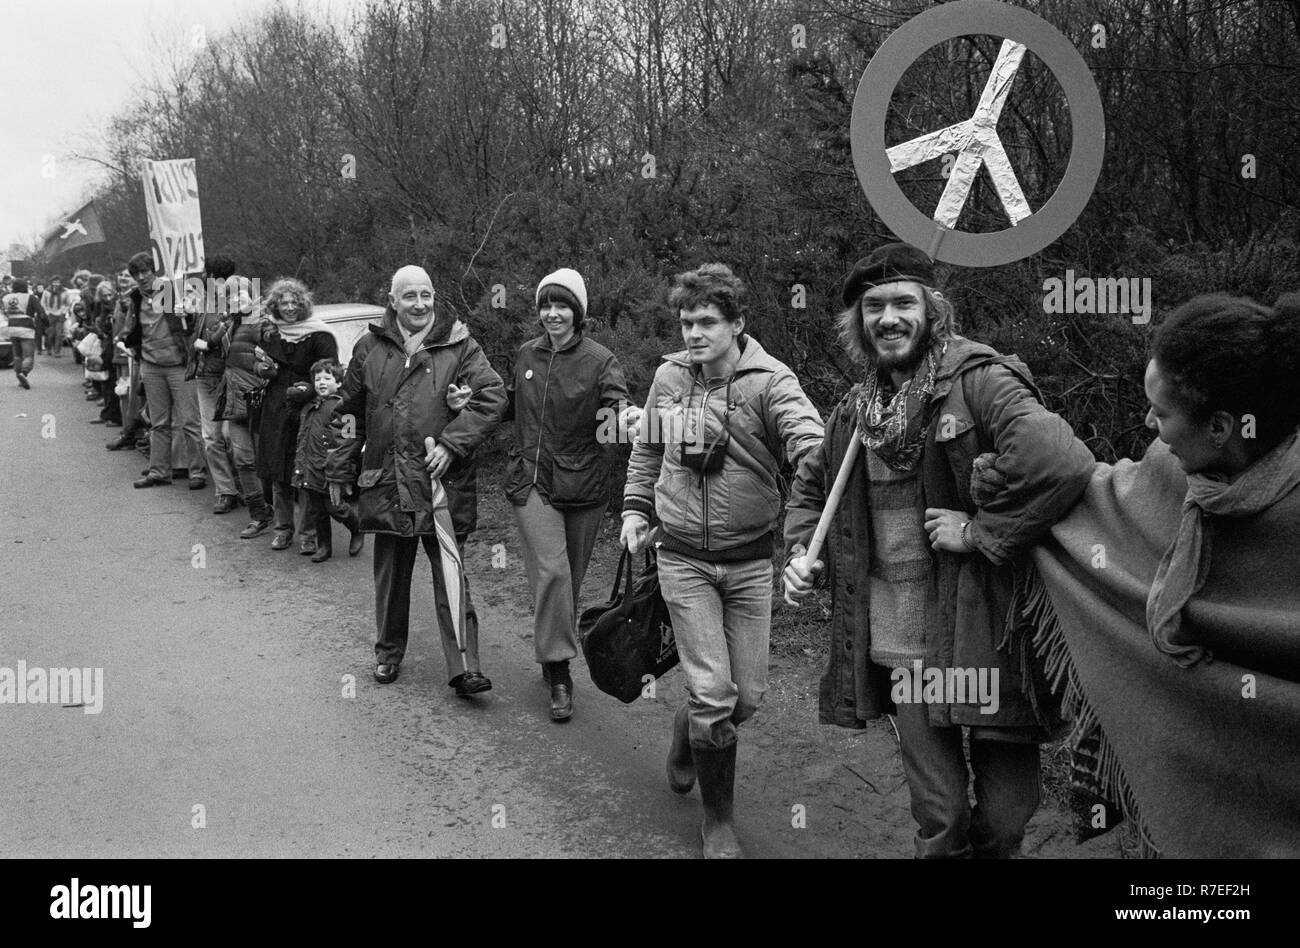 Anti-nuclear and CND supporters form a human chain outside Greenham Common US Air Force base, Berkshire, Good Friday 1983. - Stock Image